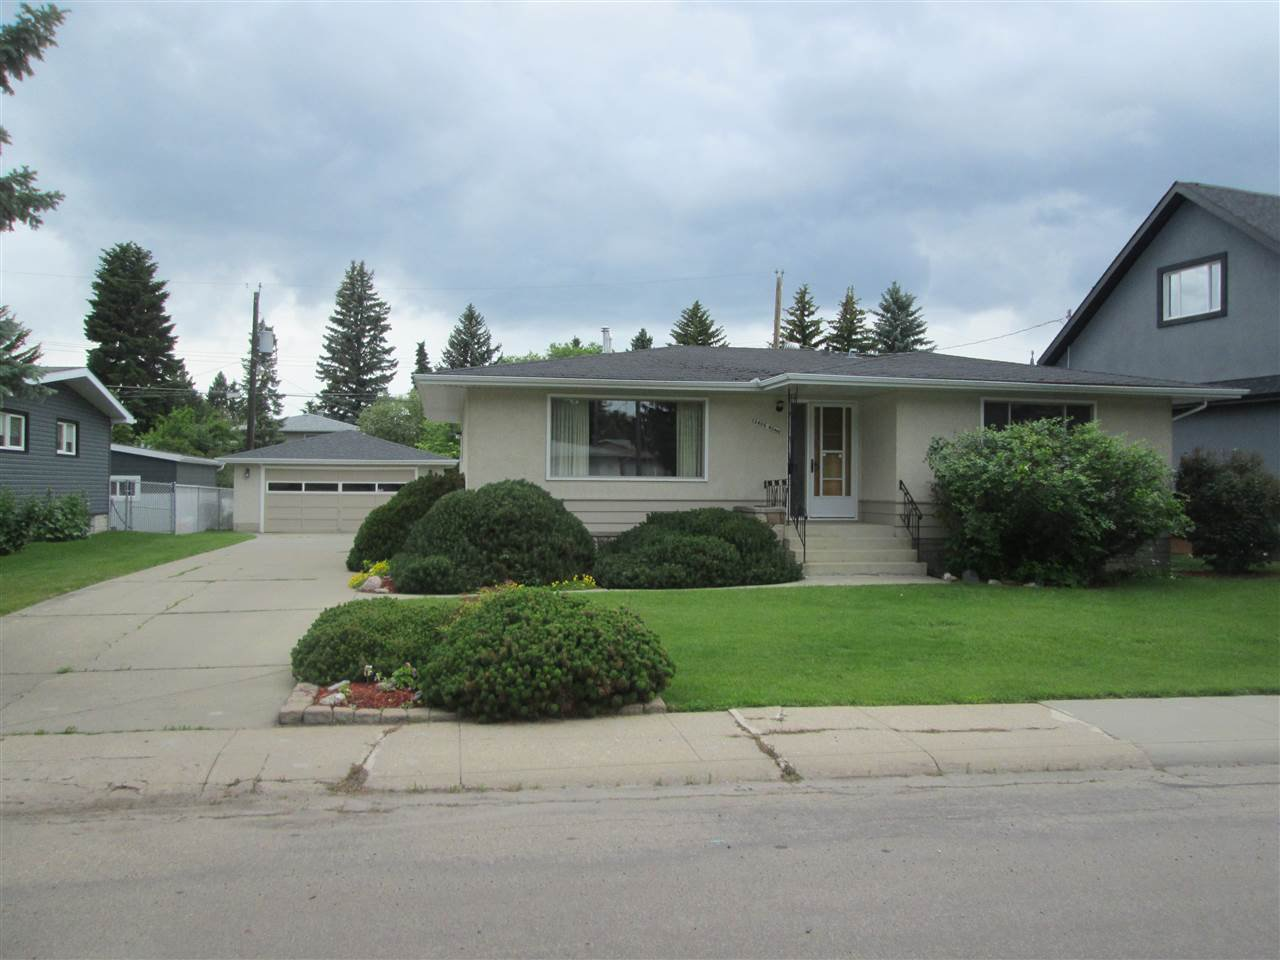 Main Photo: 12408 40 Avenue in Edmonton: Zone 16 House for sale : MLS®# E4164853